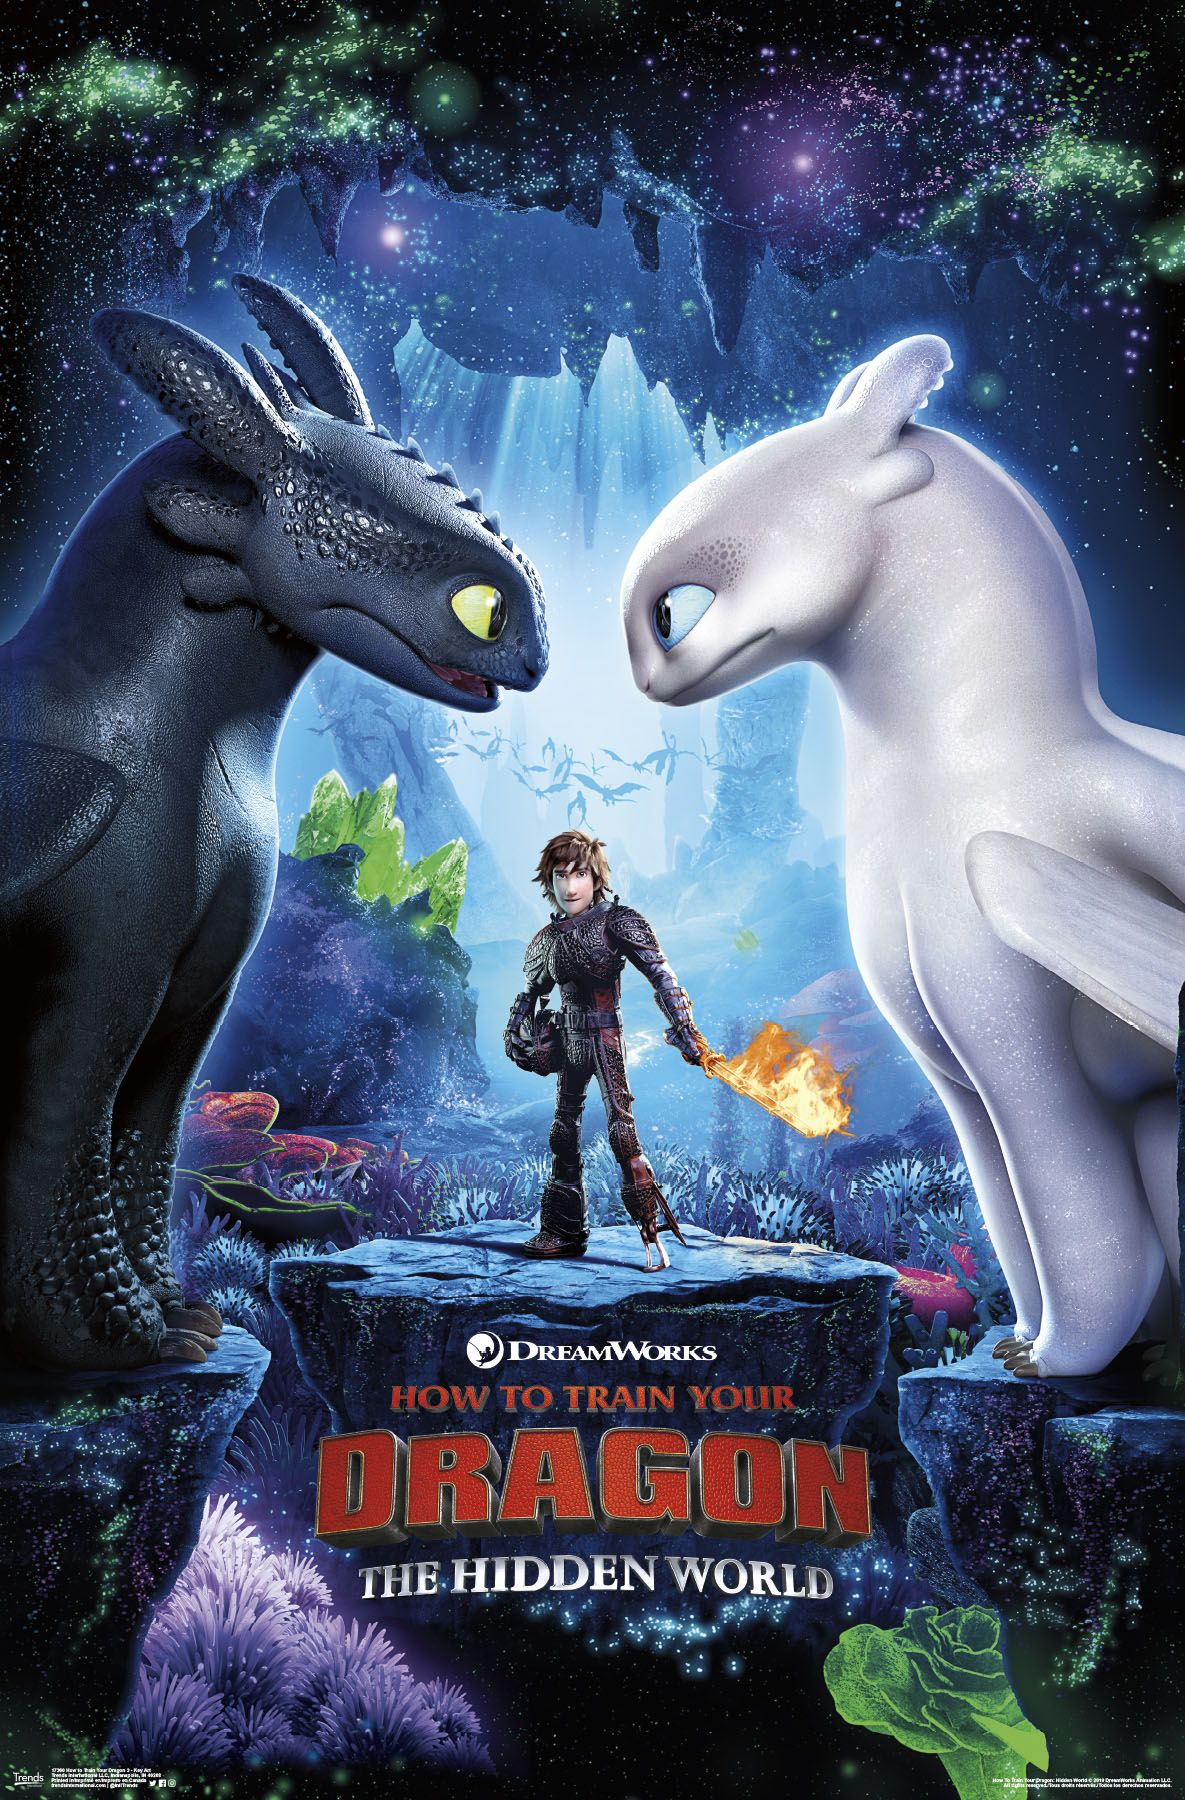 How To Train Your Dragon 3 Key Art Poster And Poster Clip Bundle How Train Your Dragon How To Train Your Dragon Outfit Ideas Black Girl School